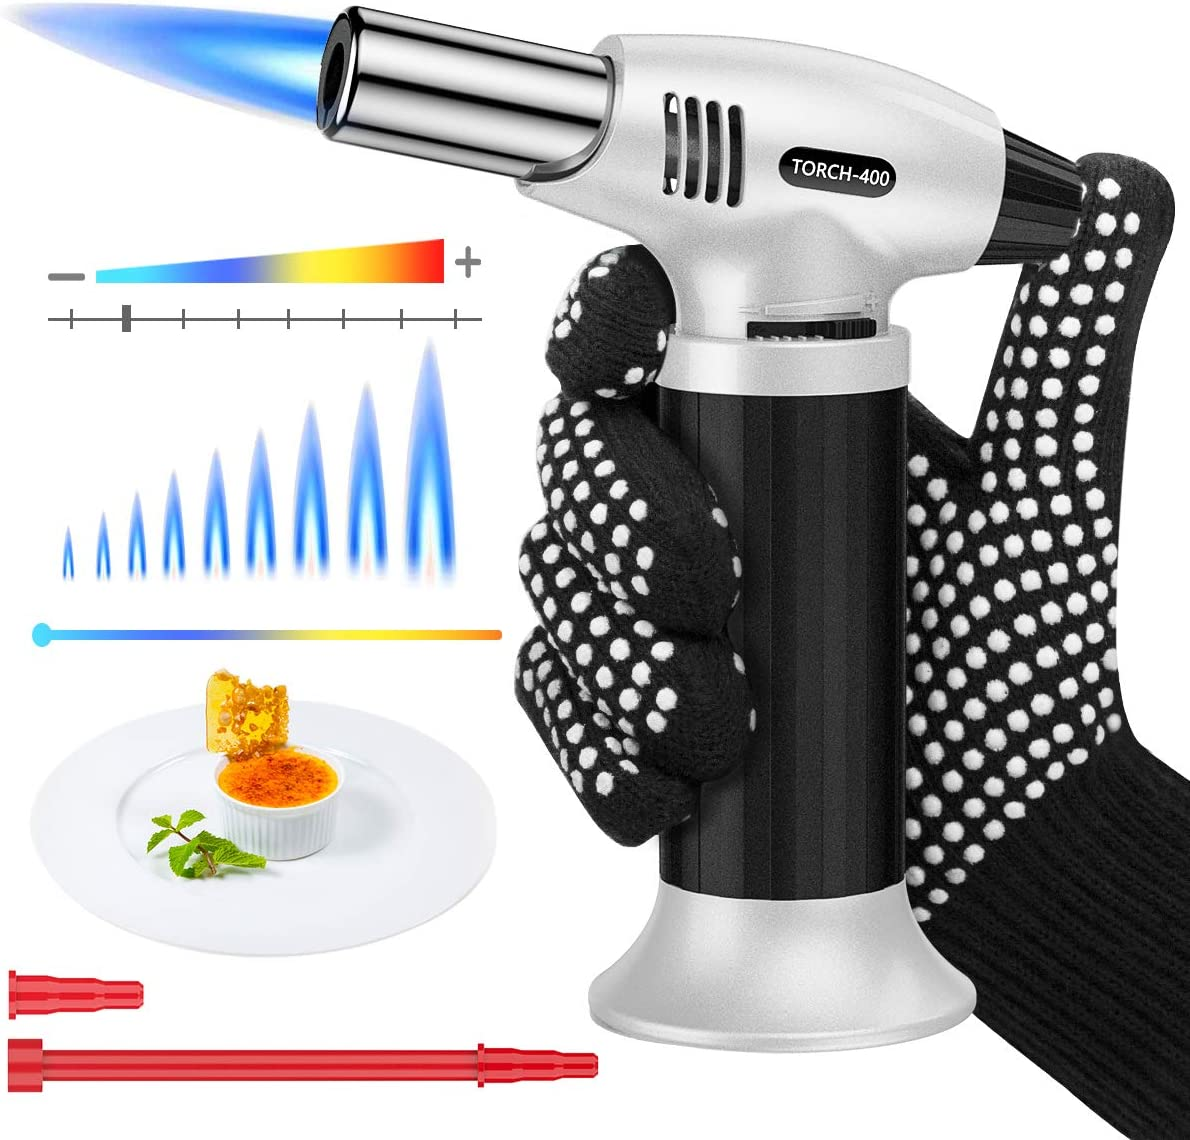 Peakally Butane Torch Lighter,Kitchen Blow Torch with Adjustable Flame,Safety Lock.Easy Use/Refill with Tool& Anti-heating Glove,Best For Creme Brulee,Cooking,Searing and More(Butane Gas Not Included)